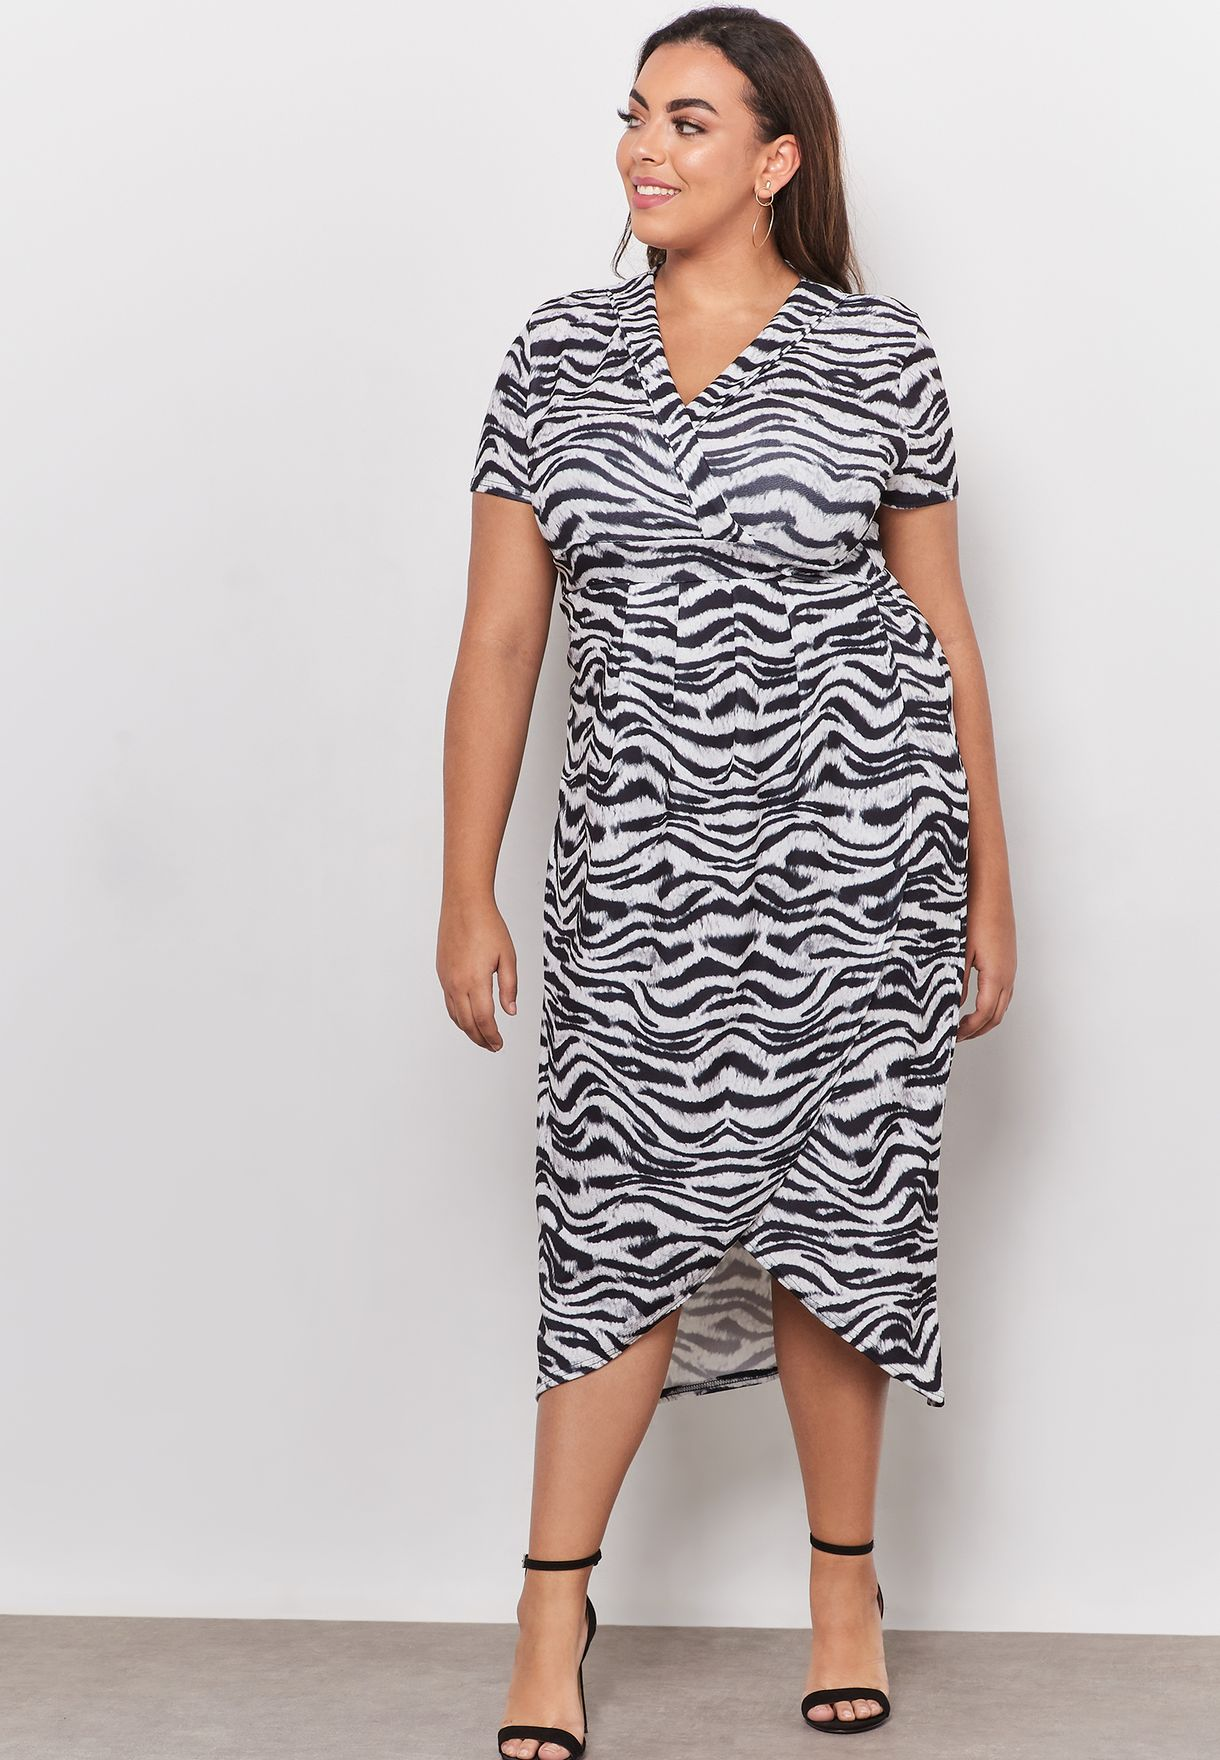 d4987018f4 Shop Quiz Curve prints Zebra Print Wrap Short Sleeve Dress ...